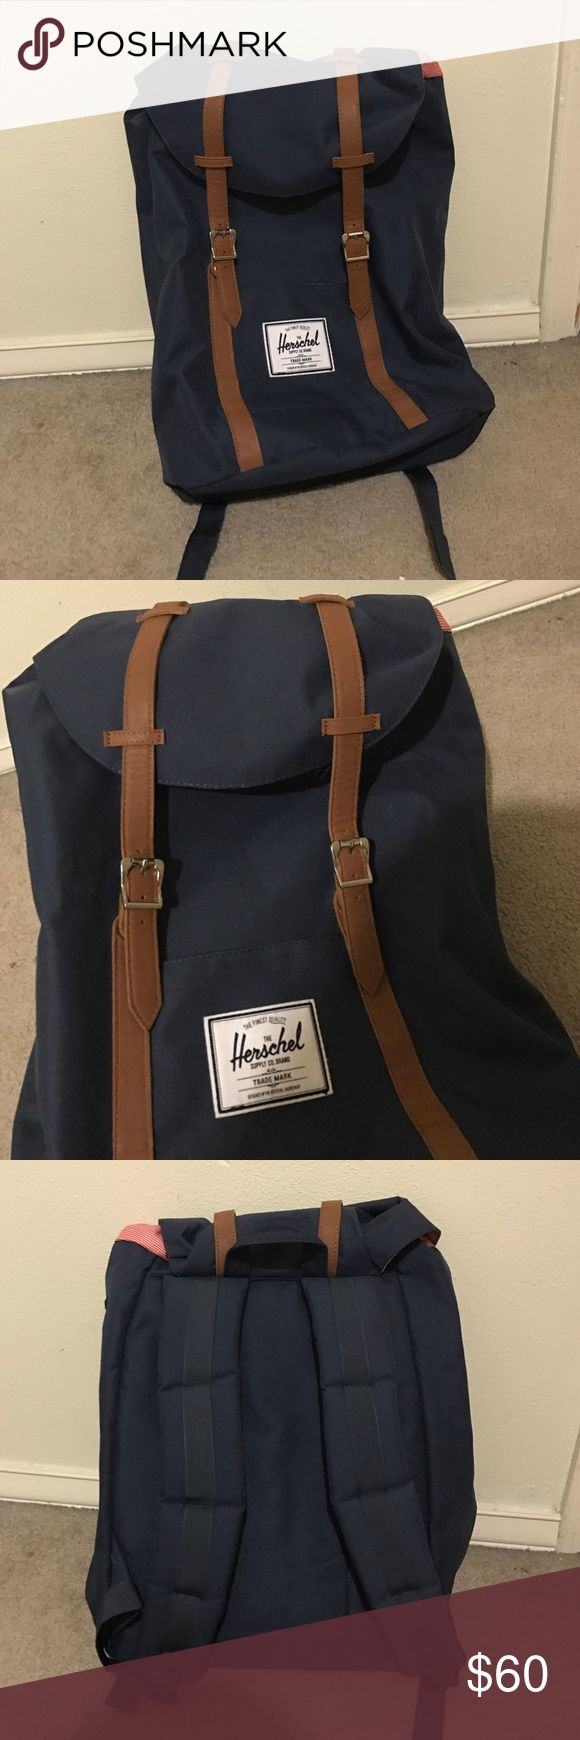 Herschel navy blue backpack bag In excellent condition, original price was $89 bought from Nordstrom Herschel Supply Company Bags Backpacks